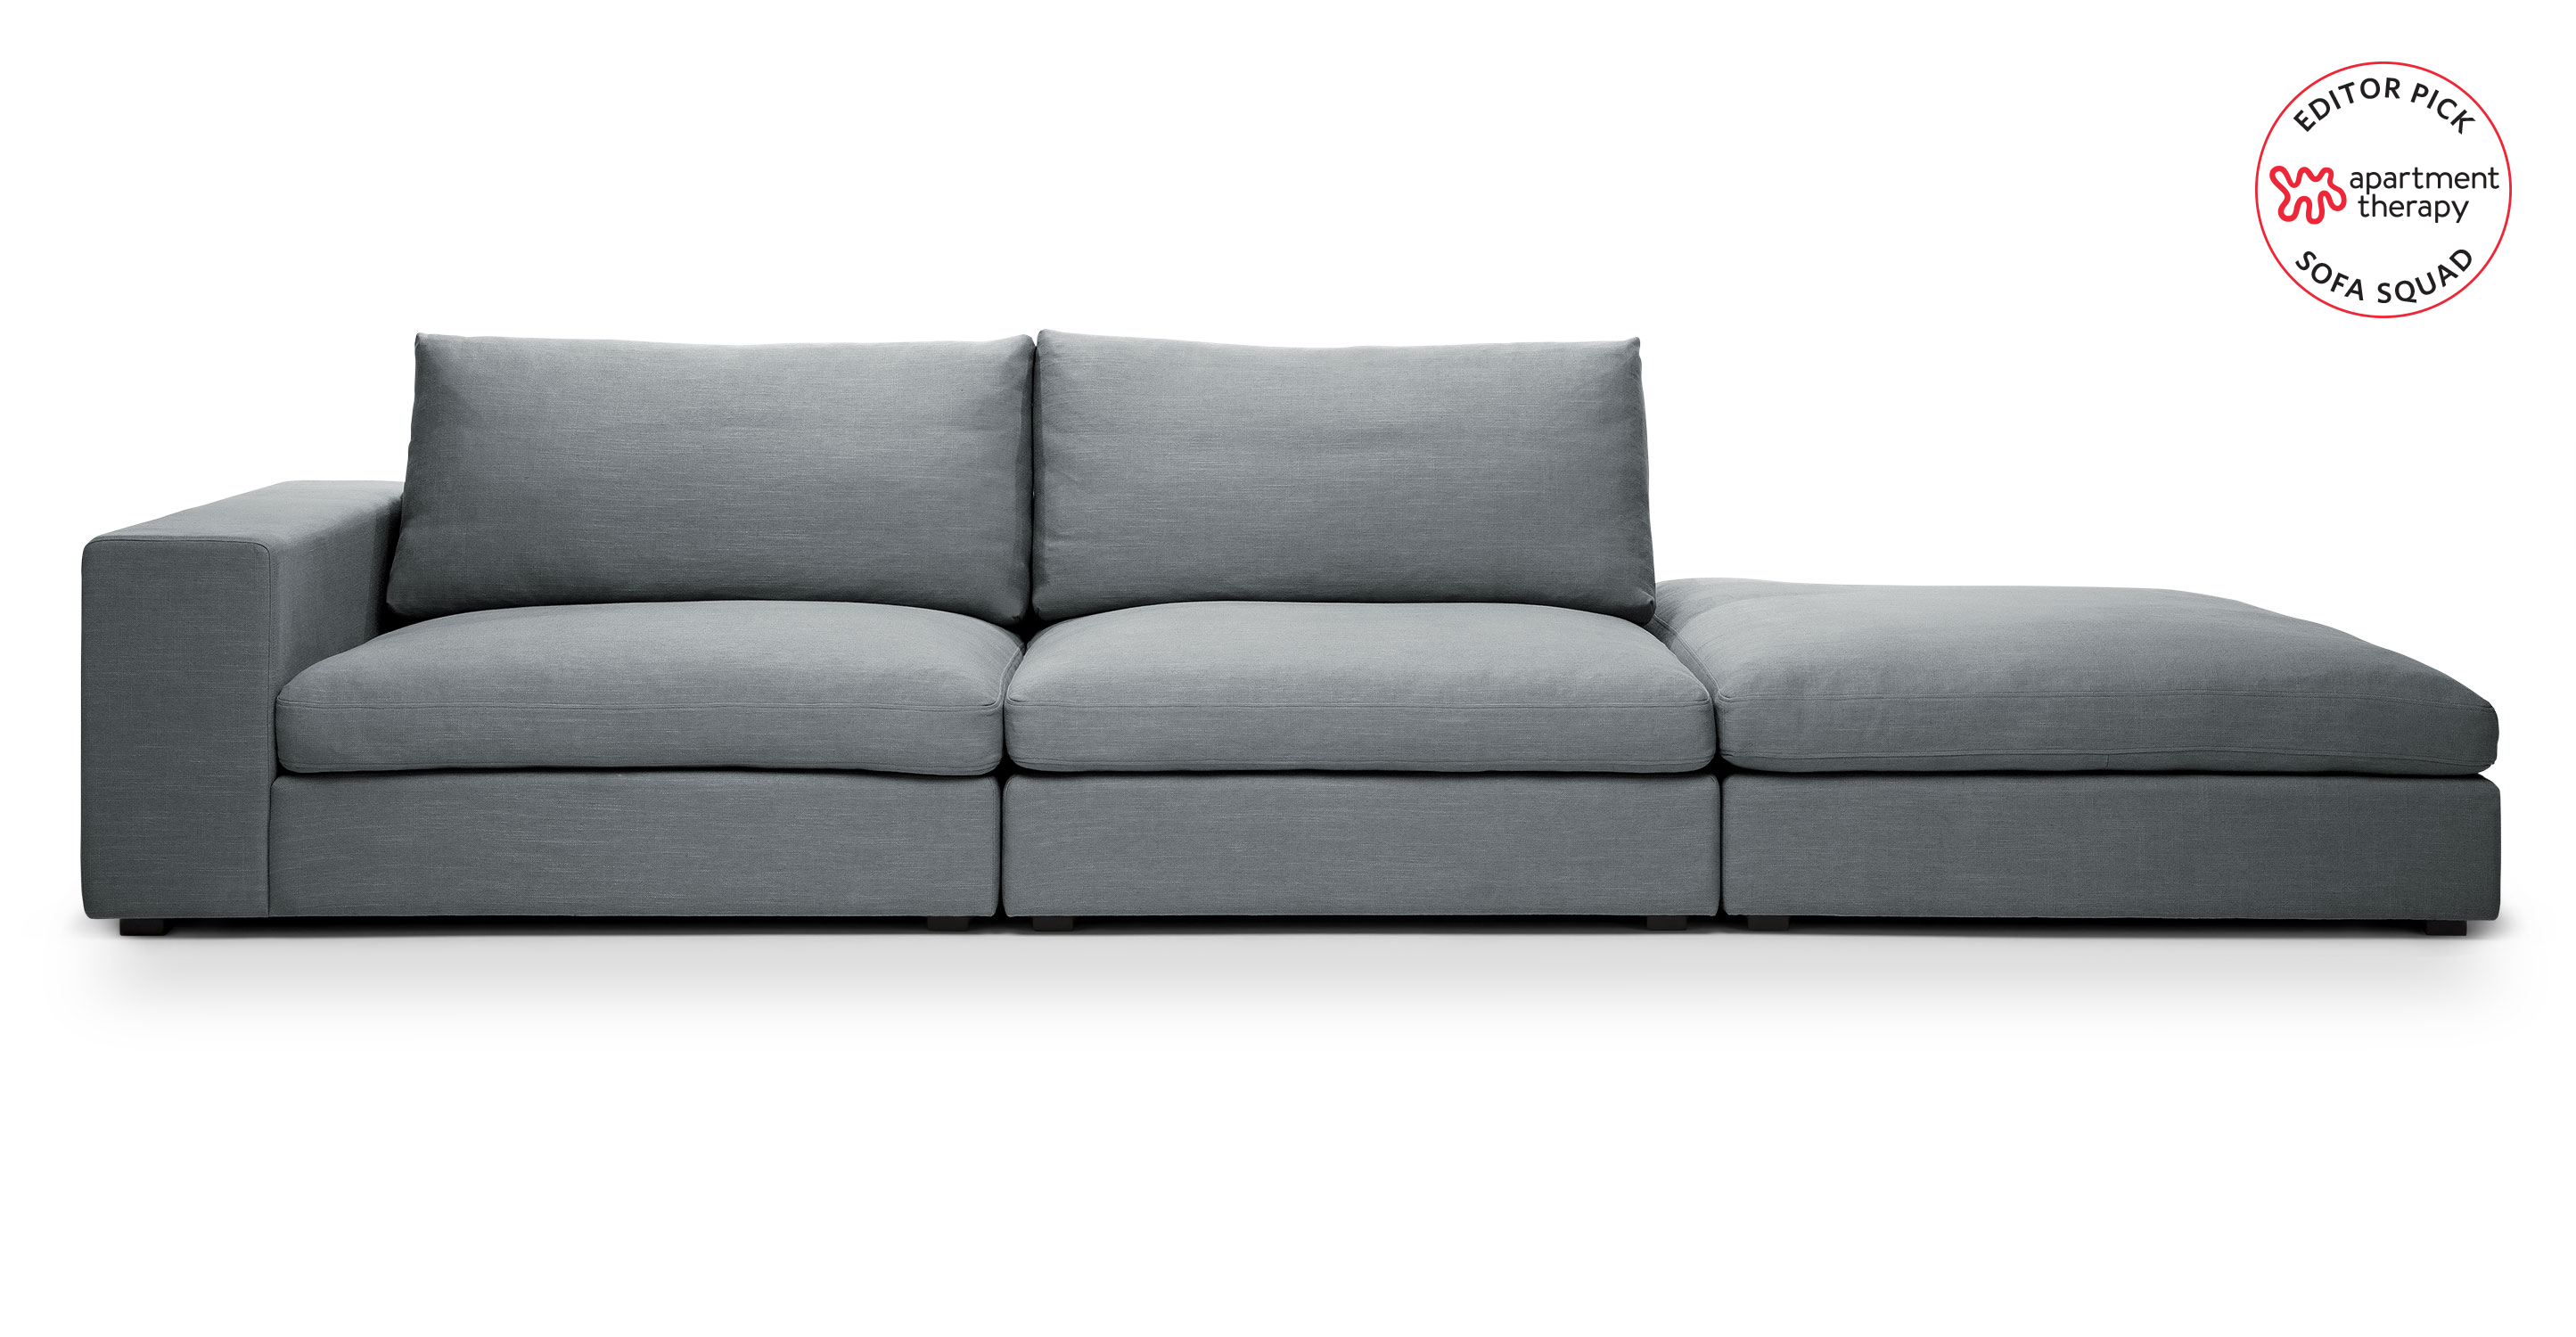 Reviewed: The Most Comfortable Sofas at Article | Furniture ...